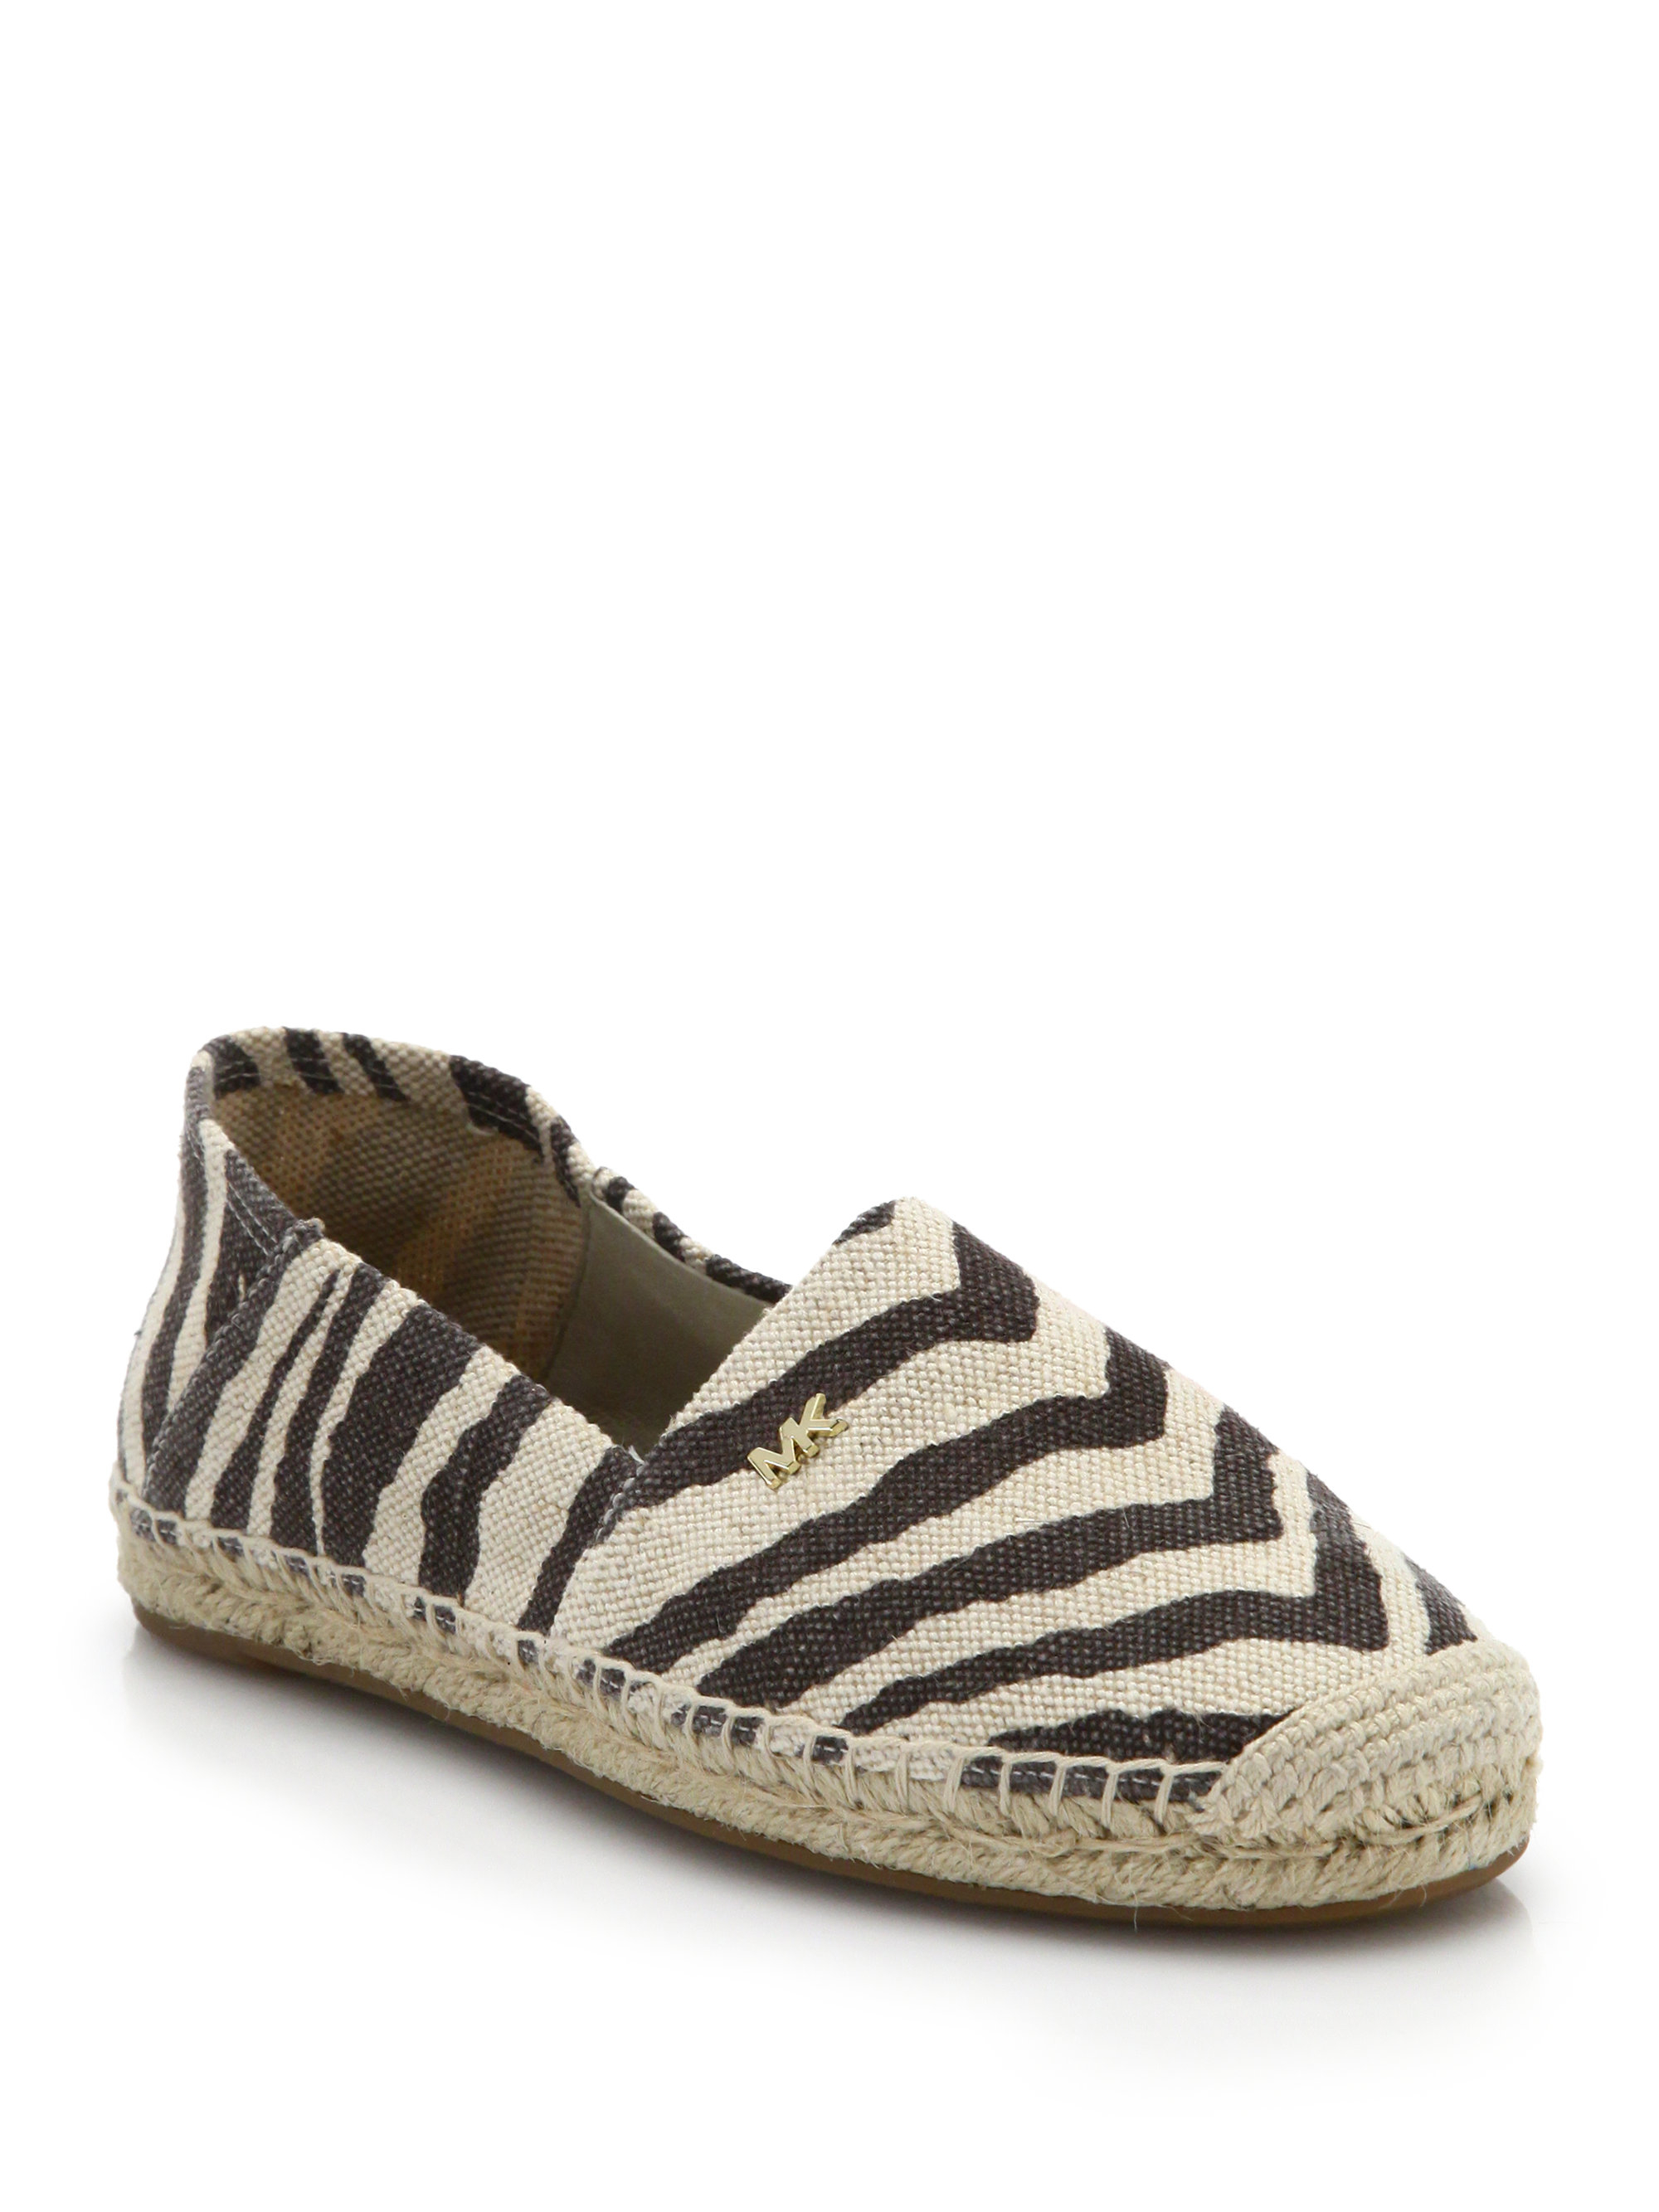 michael michael kors zebra print canvas espadrilles in natural lyst. Black Bedroom Furniture Sets. Home Design Ideas